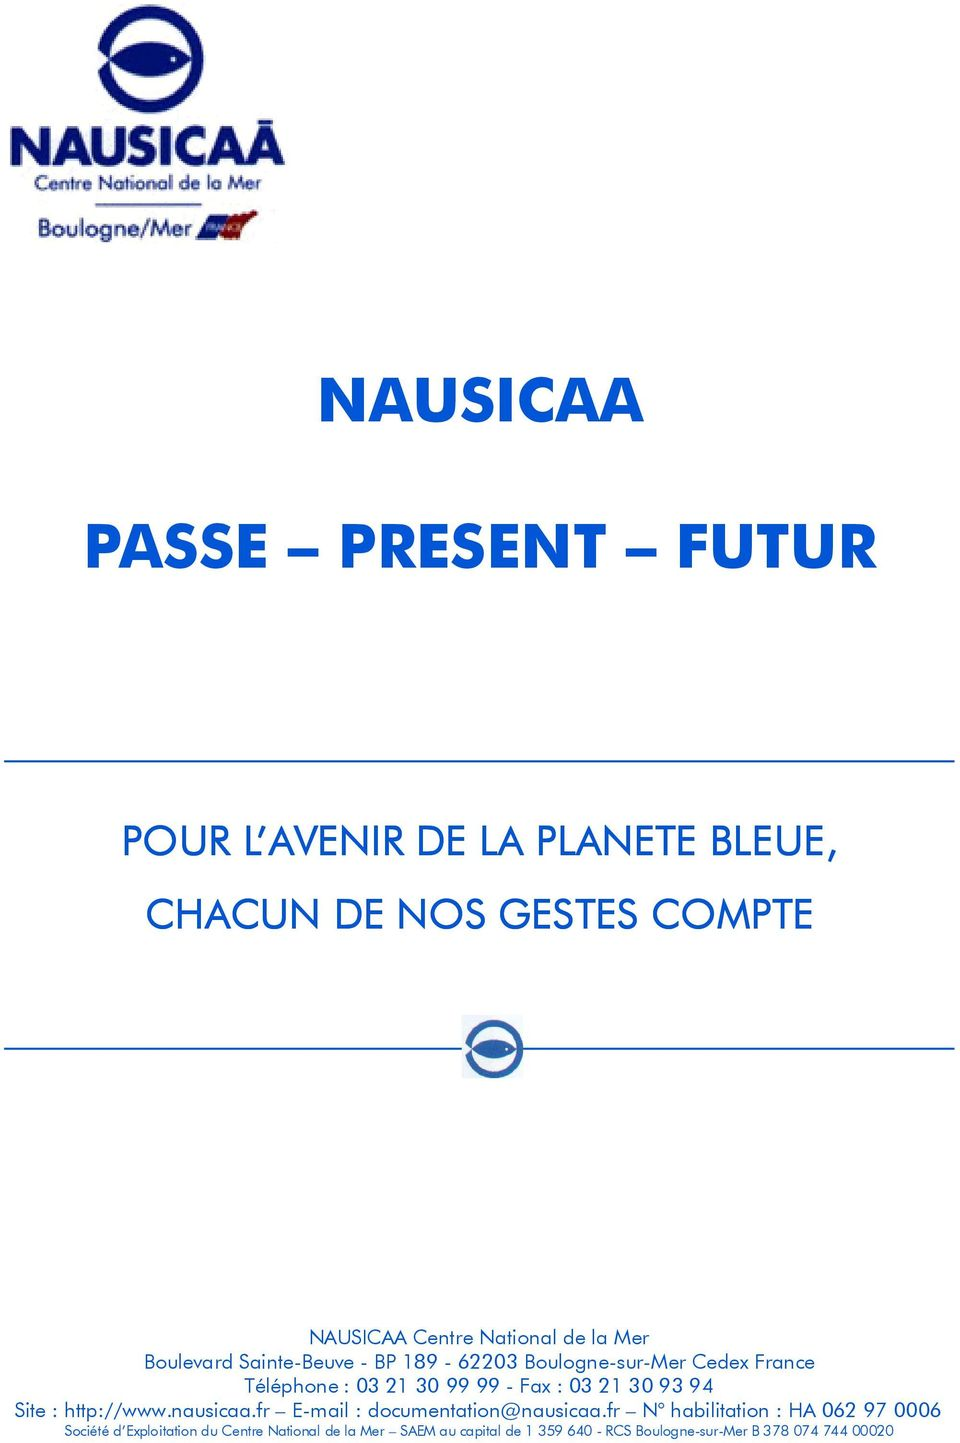 21 30 93 94 Site : http://www.nausicaa.fr E-mail : documentation@nausicaa.